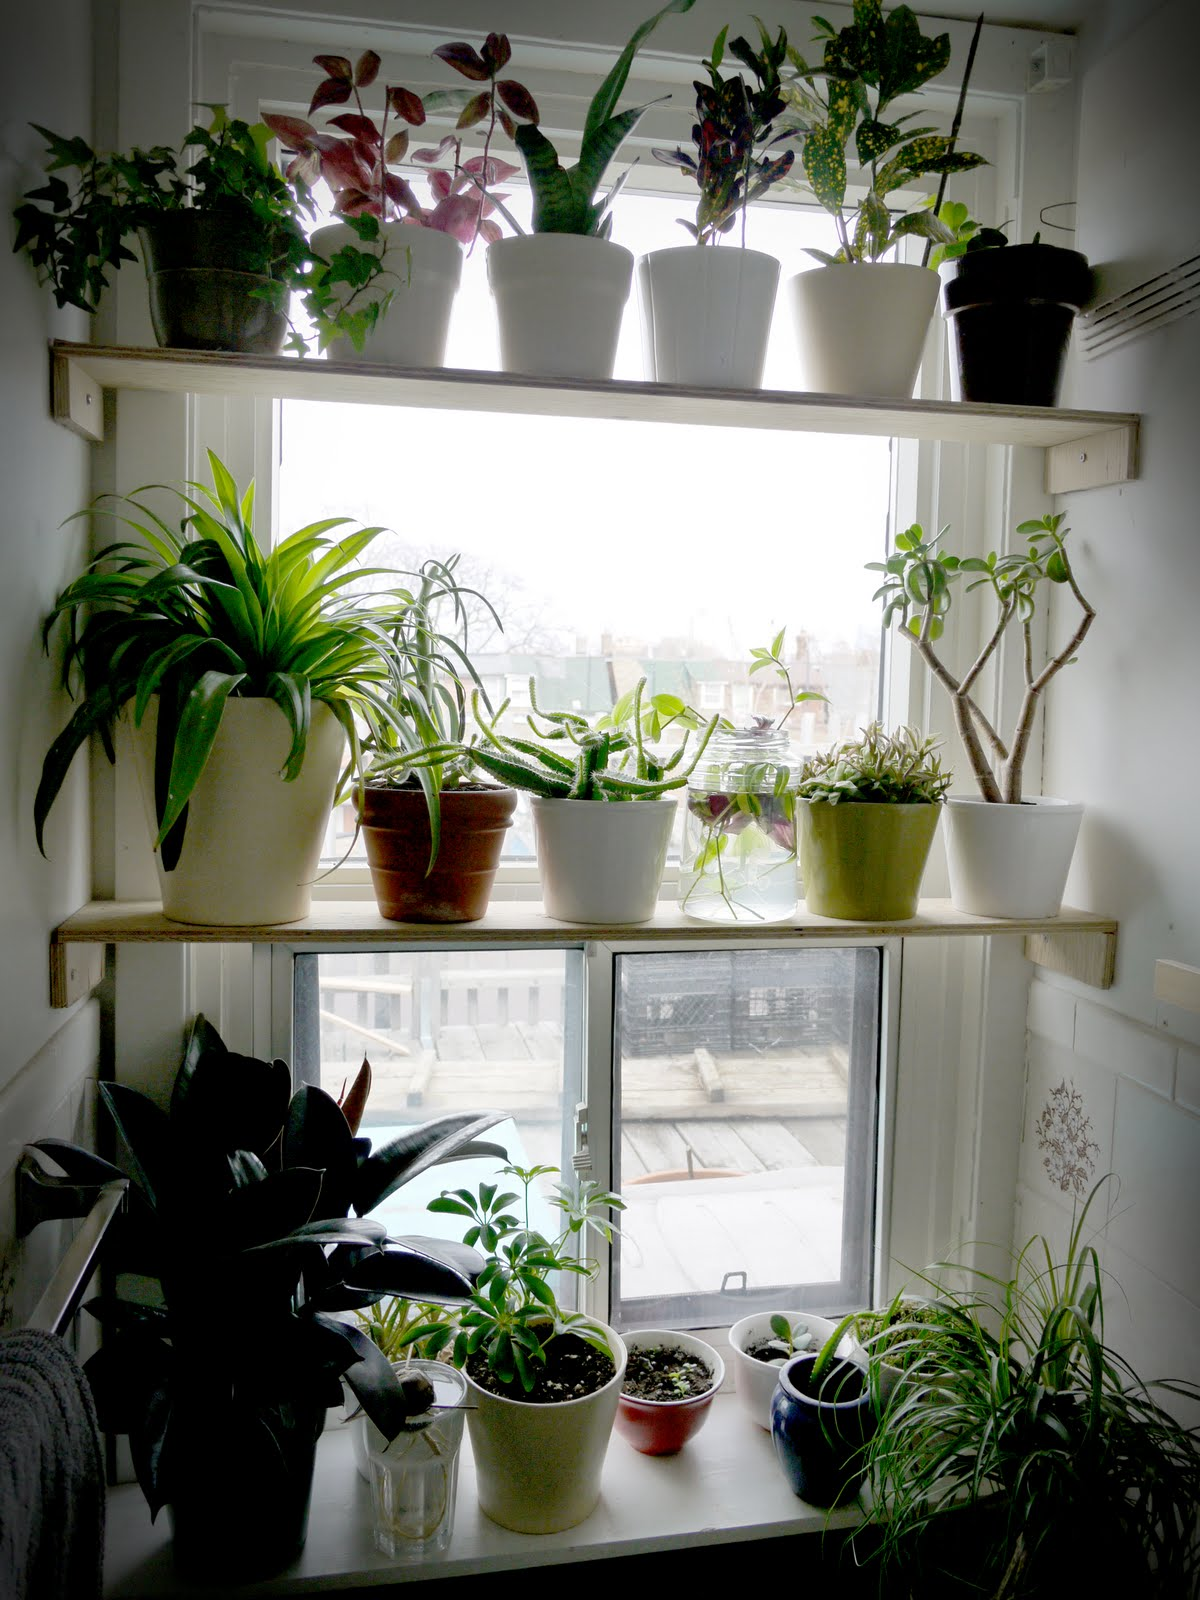 Apartment Garden on Pinterest